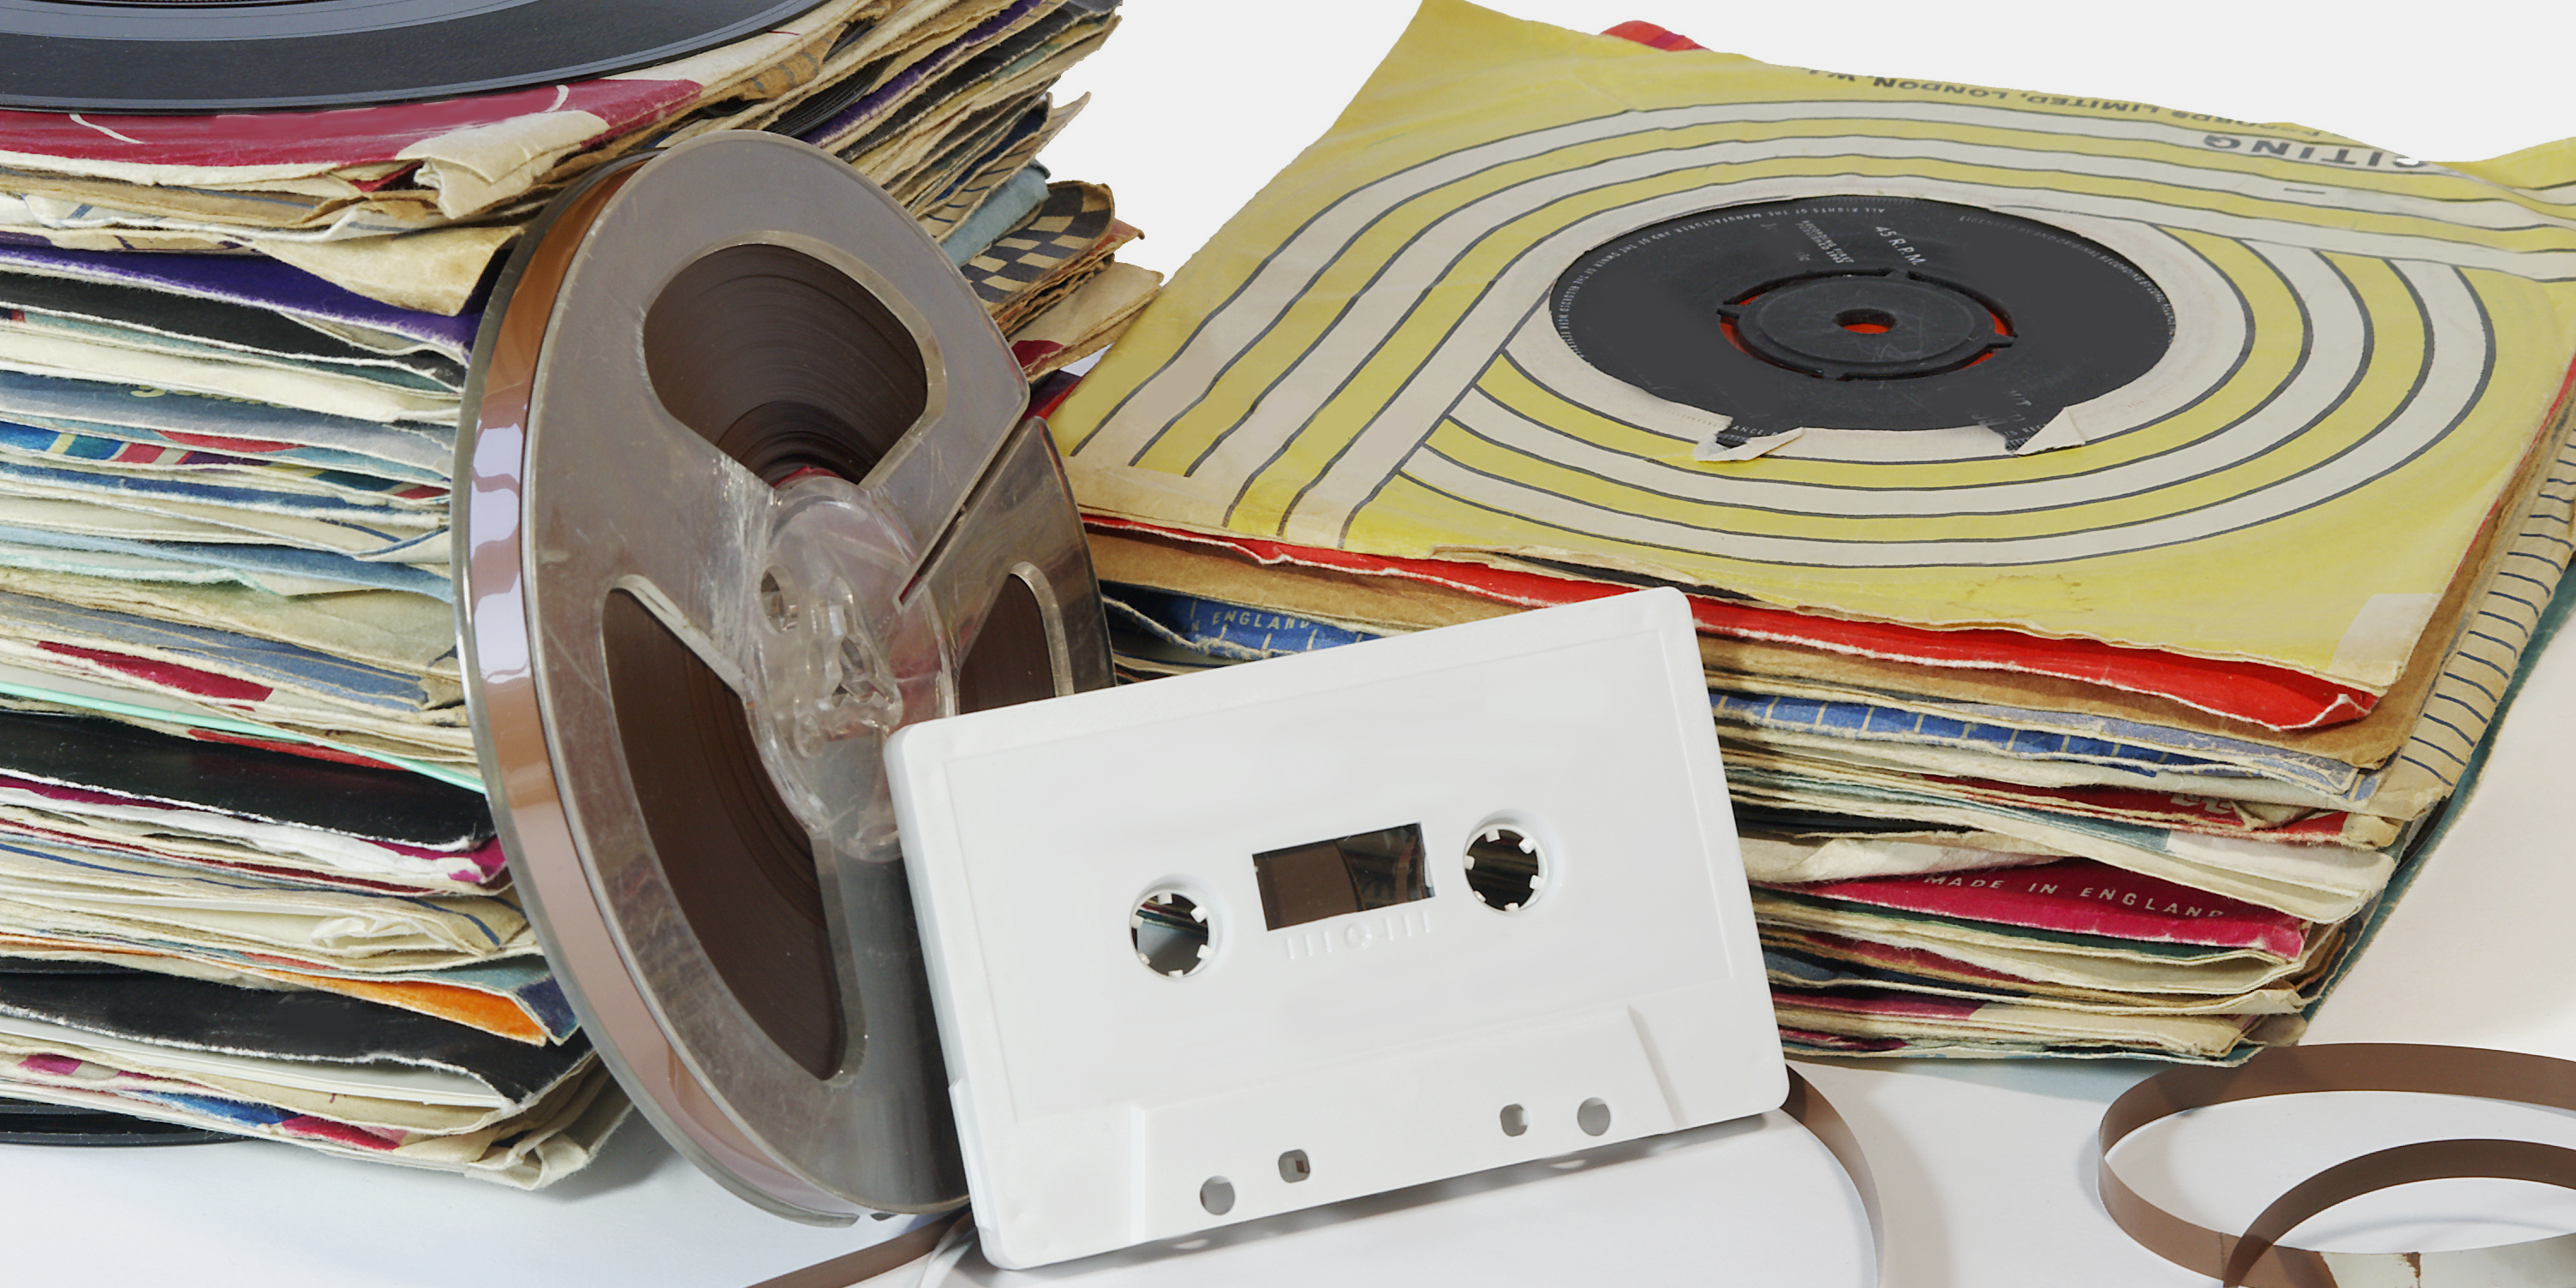 Transfer audio tapes, cassettes and vinyl records to Compact Disc (CD) and digital files at Milwaukee Media Duplication.